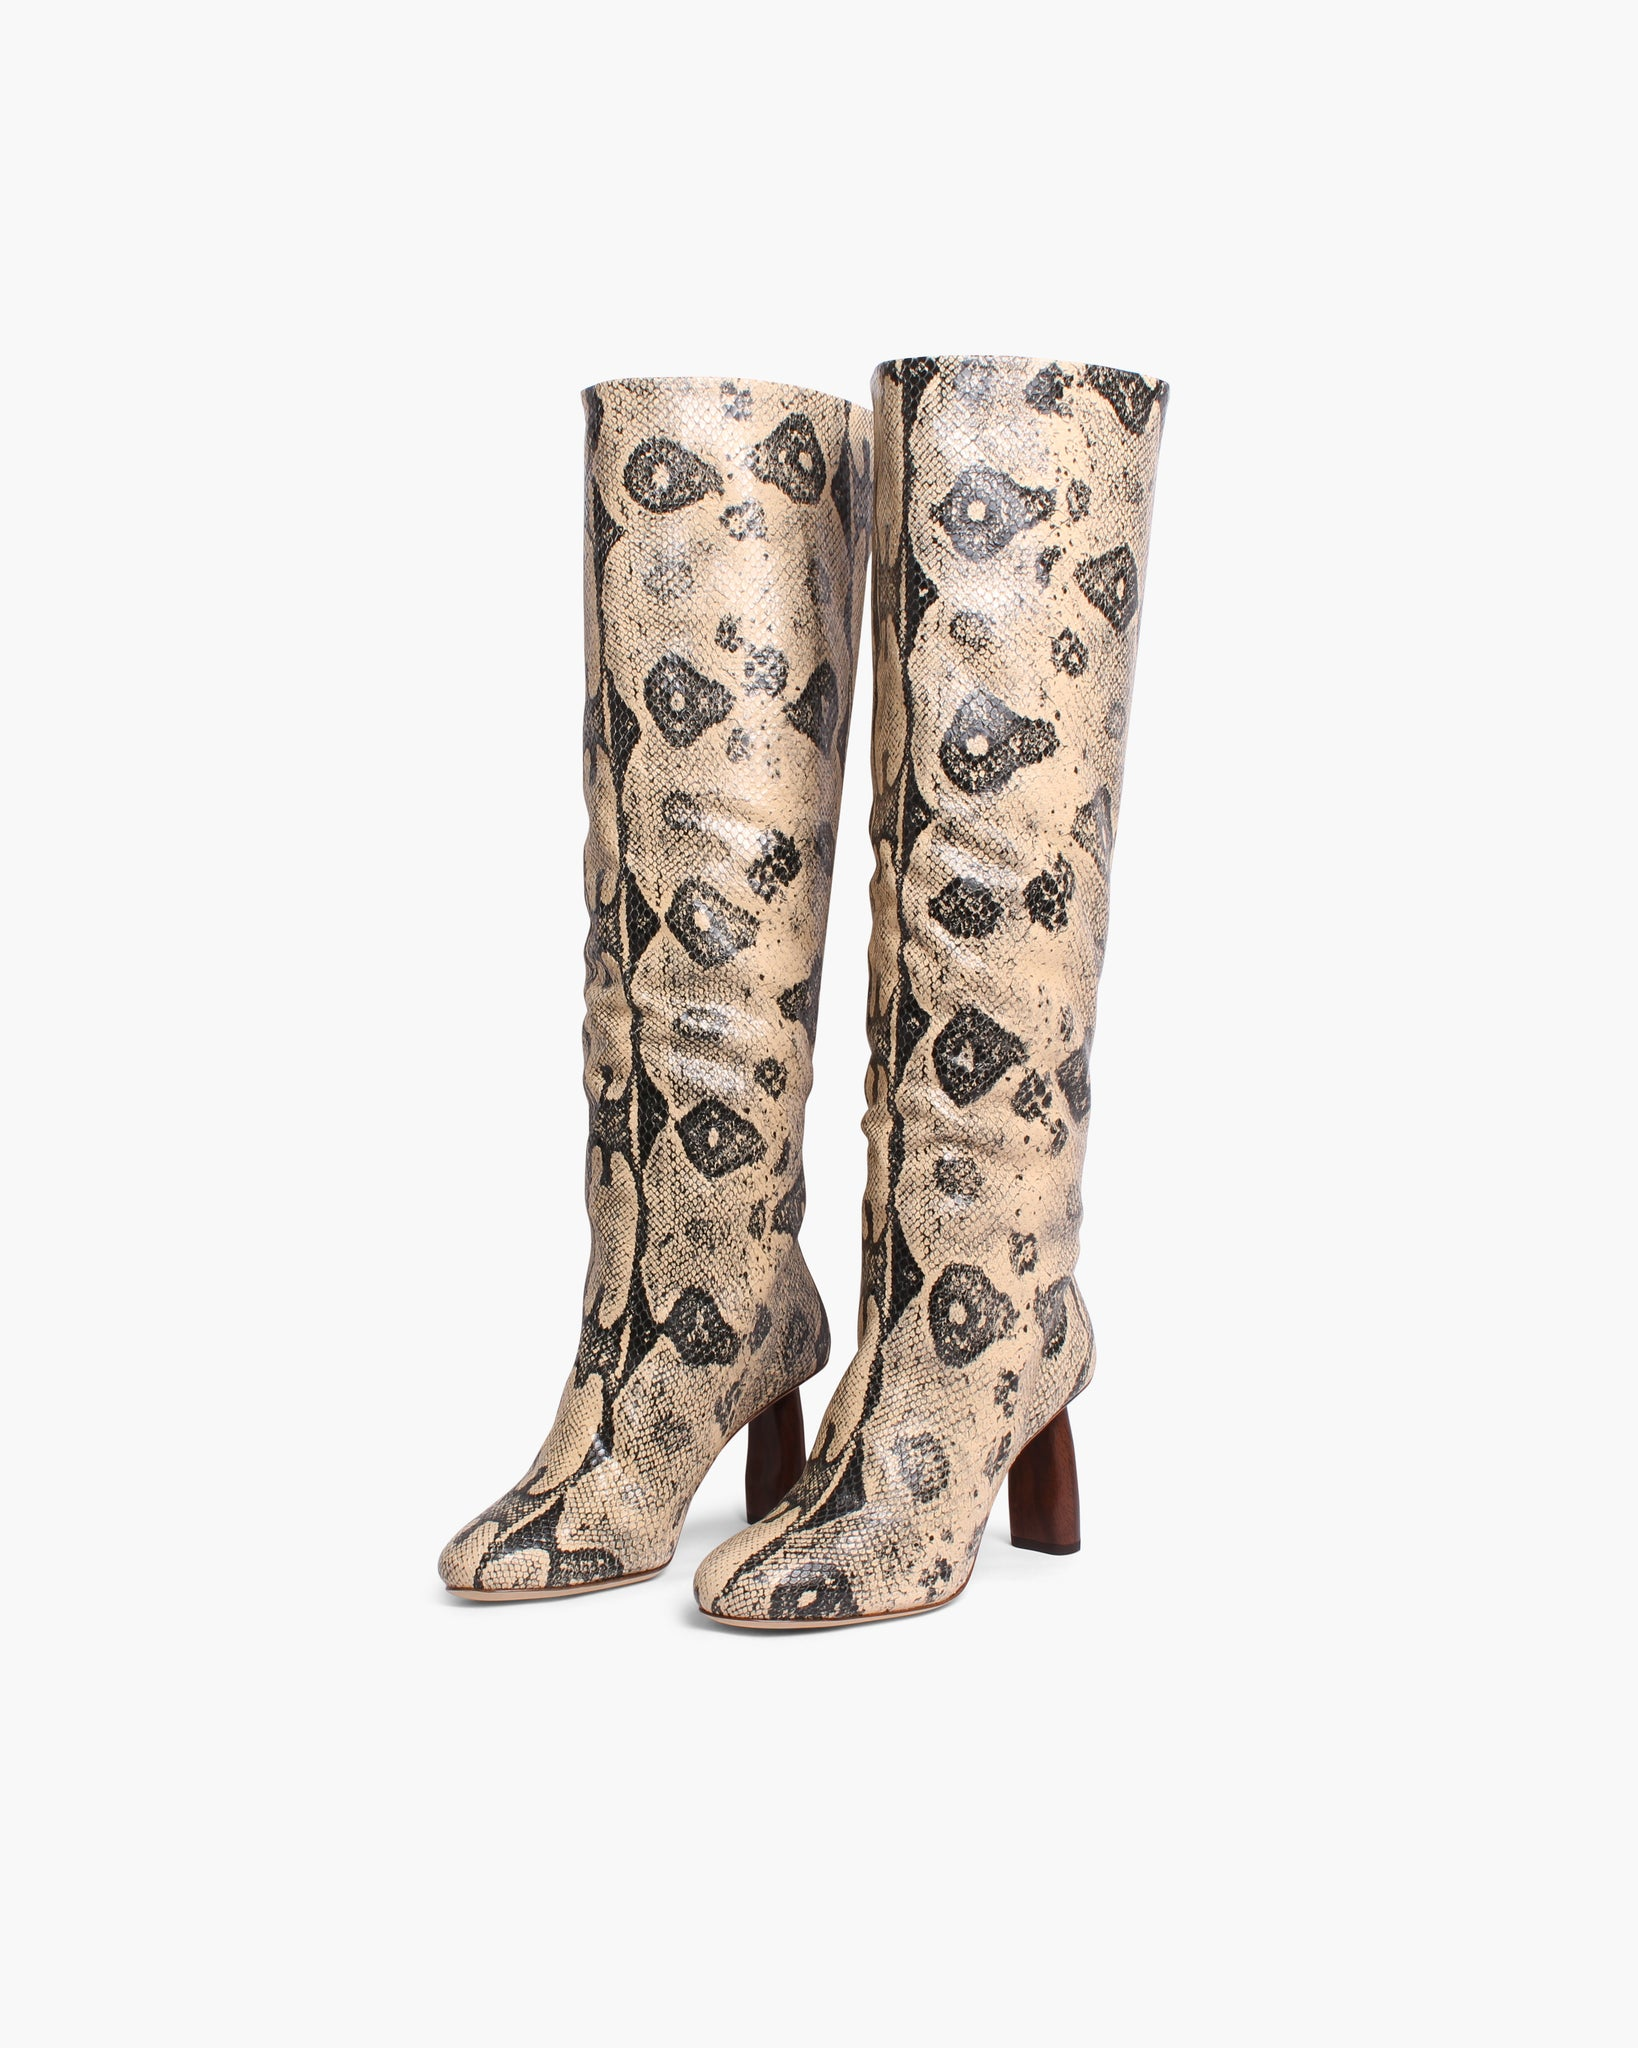 Allegra Boots Leather Print Boa Beige - WEBSHOP EXCLUSIVE - SPECIAL PRICE